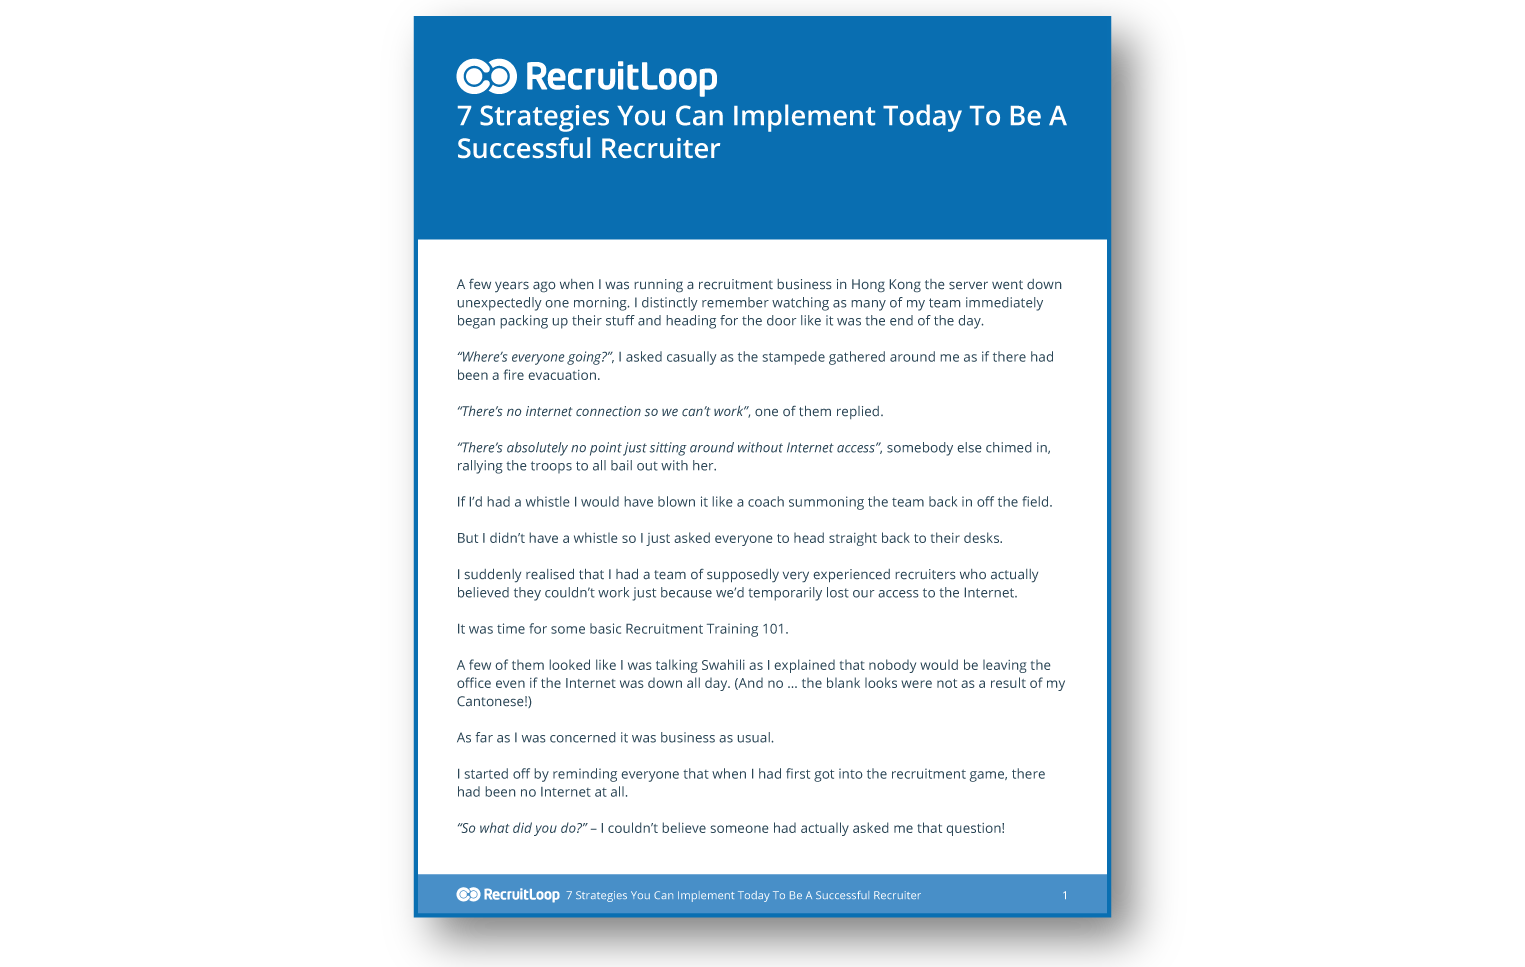 7 Strategies You Can Implement Today To Be A Successful Recruiter_366x232